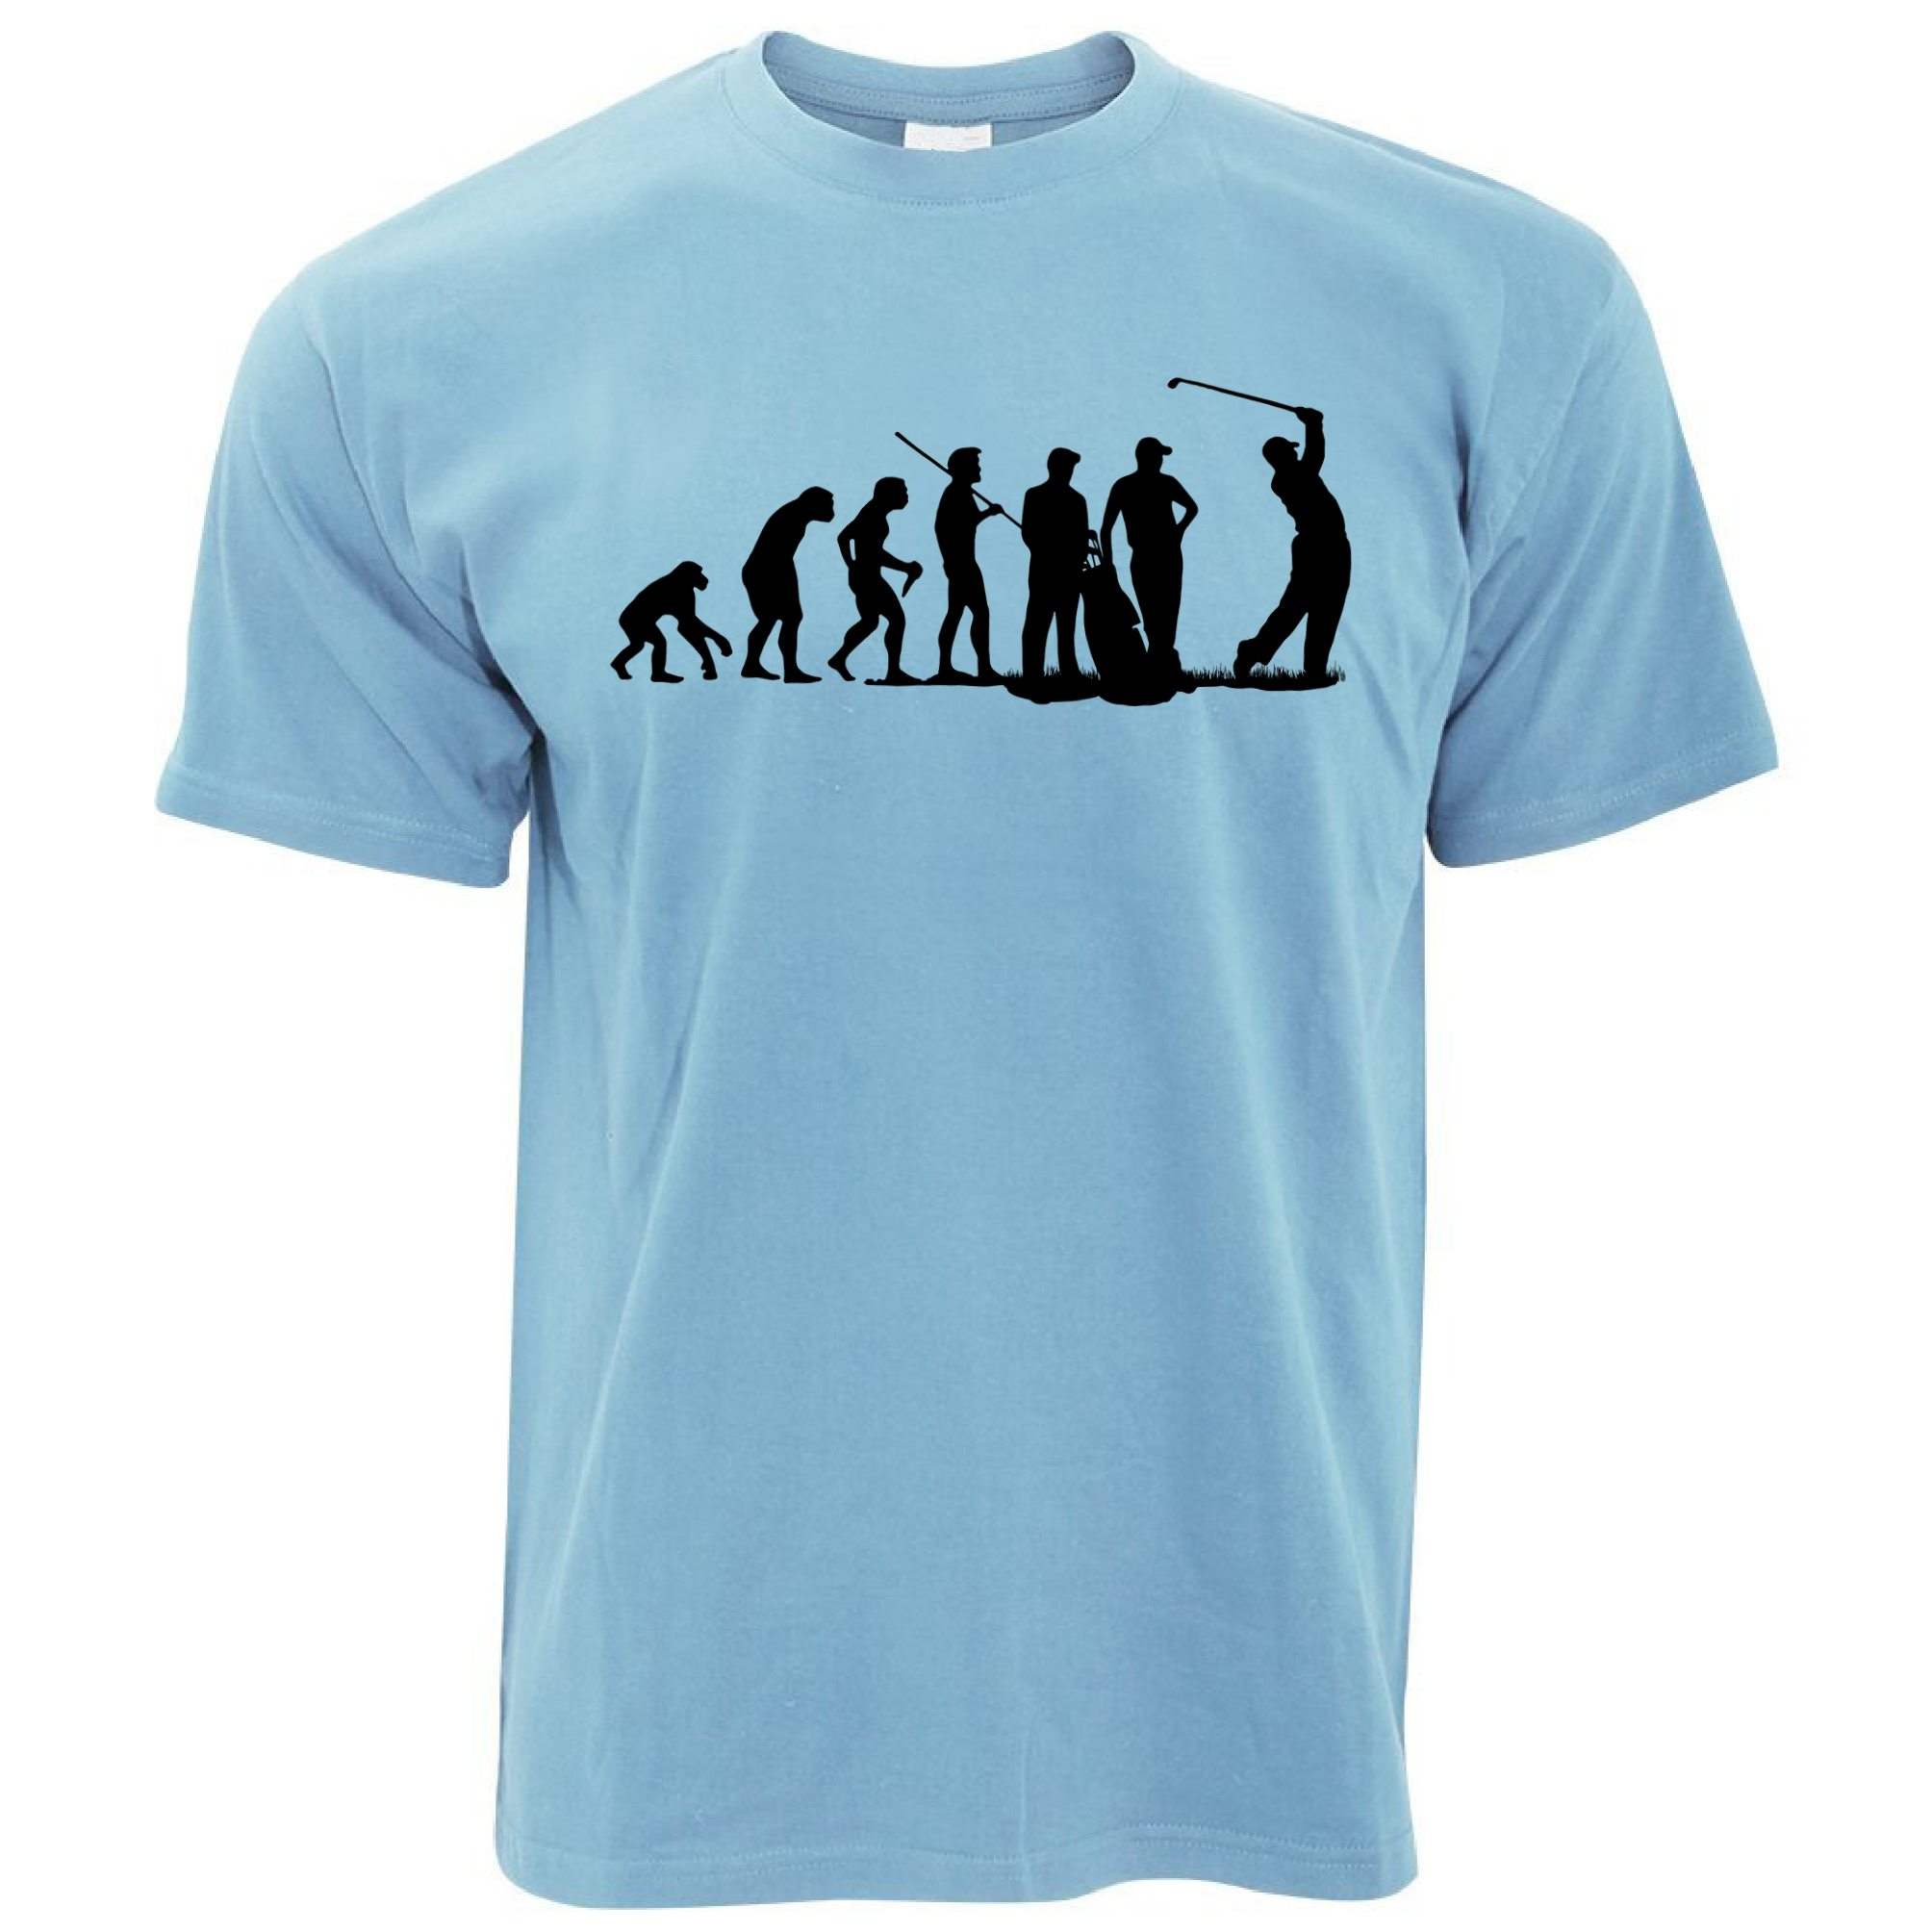 Evolution of golf club course iron wood mens t shirt ebay for Golf t shirts for sale